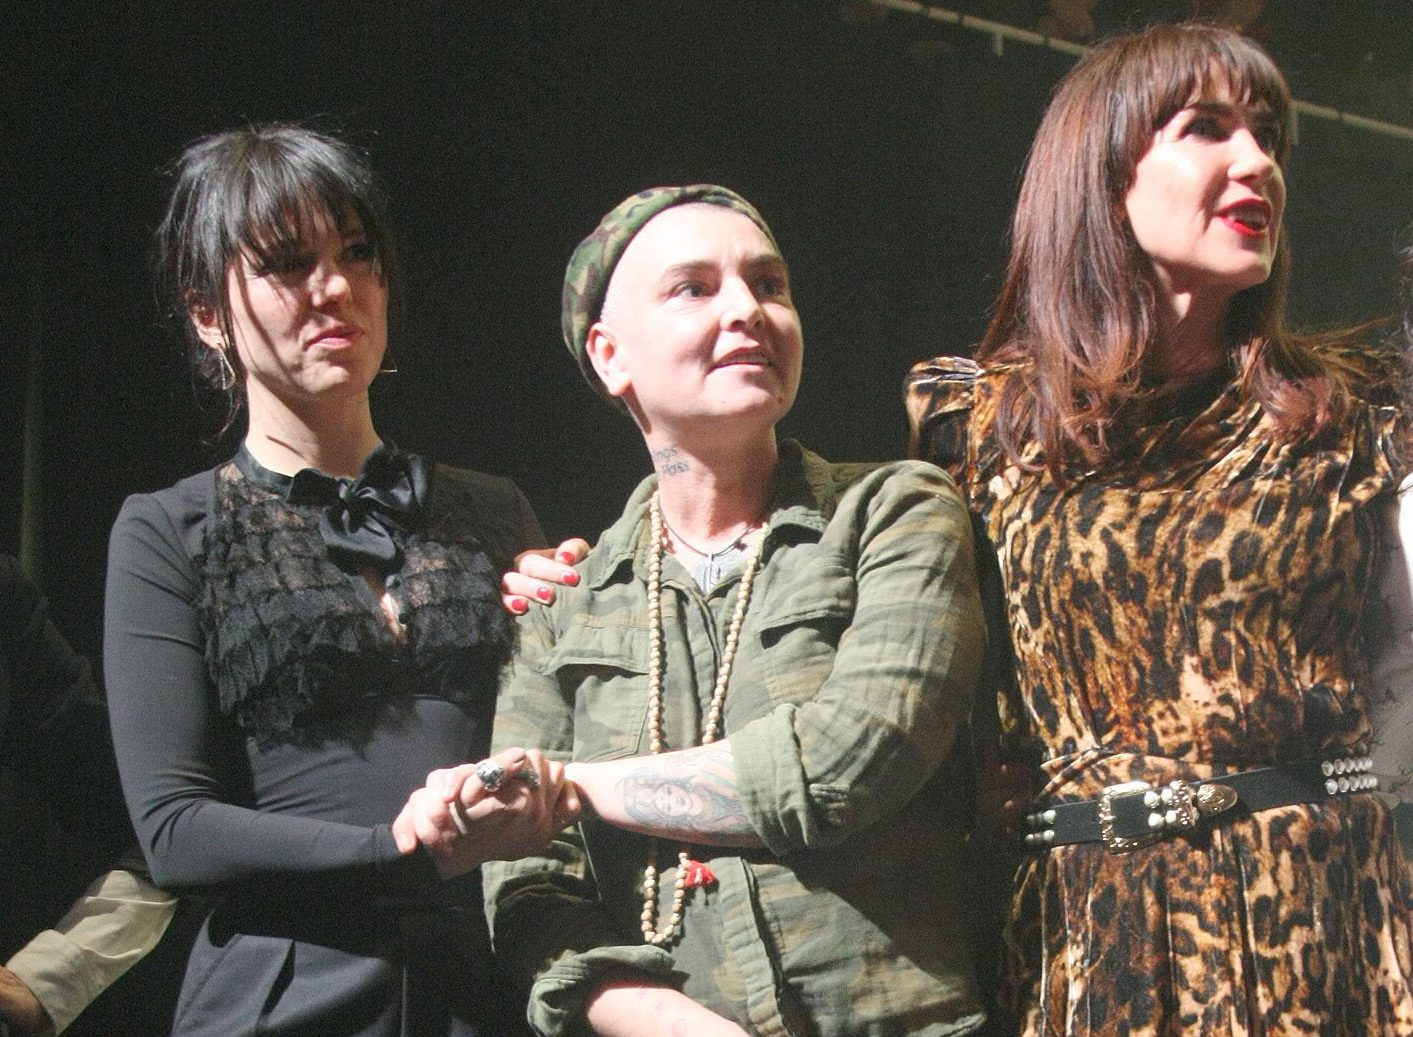 Sinead O'Connor looks happy and healthy as she parties with Johnny Depp and Shane MacGowan